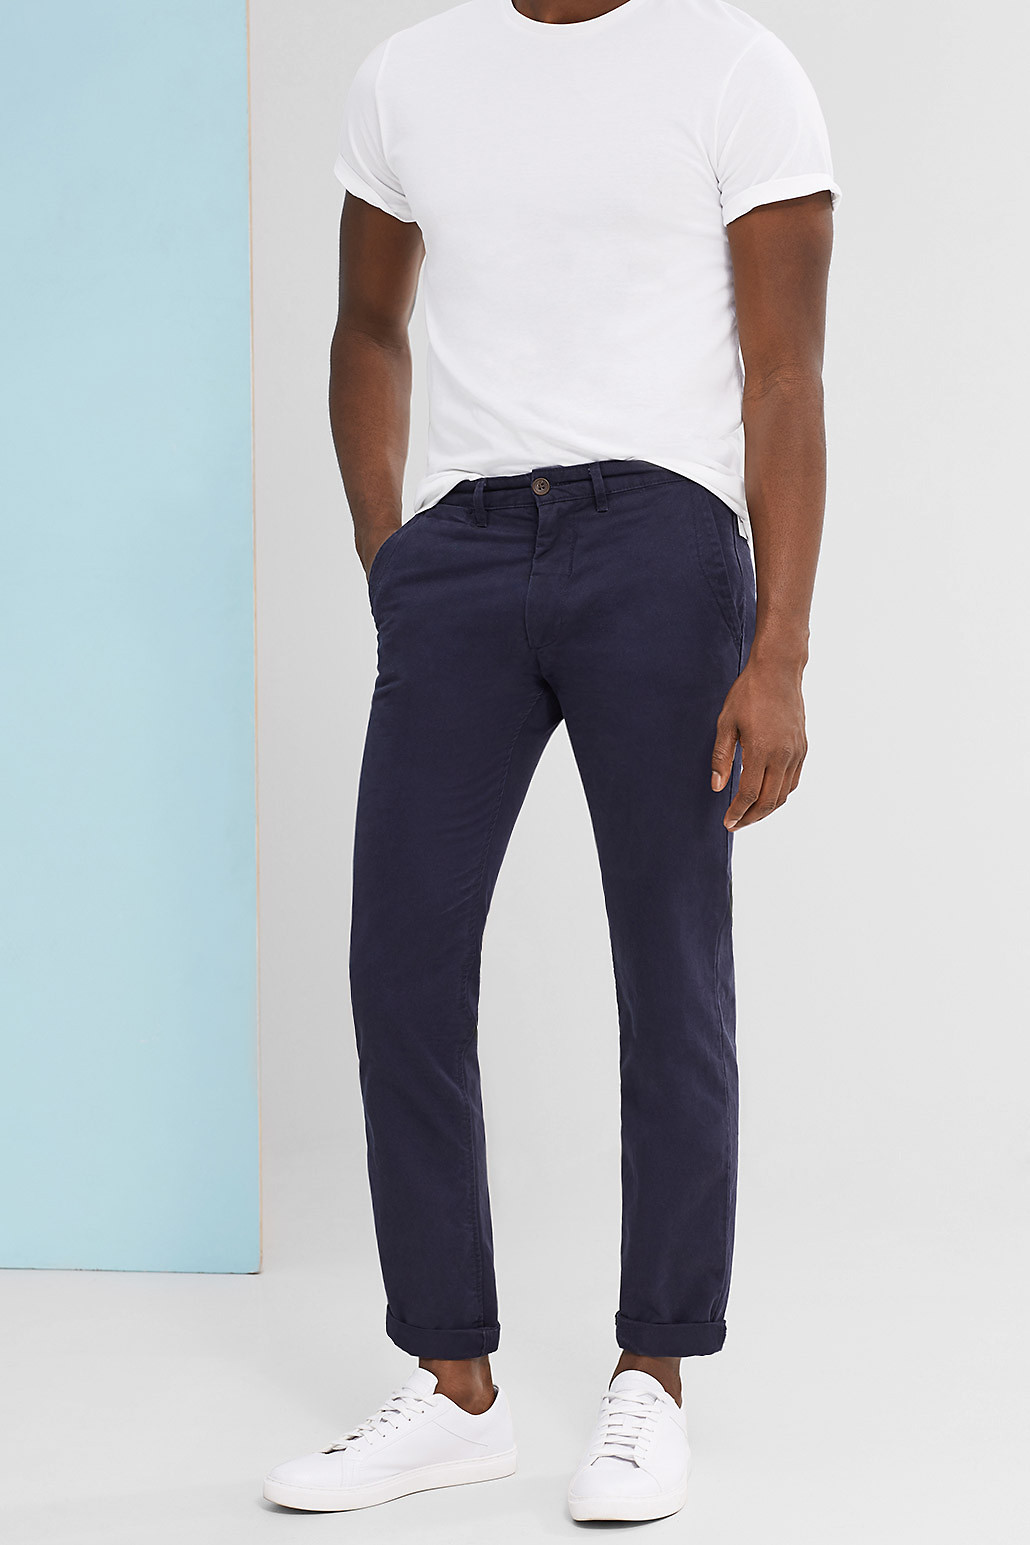 Esprit Navy - 400 Straight Fit Chino